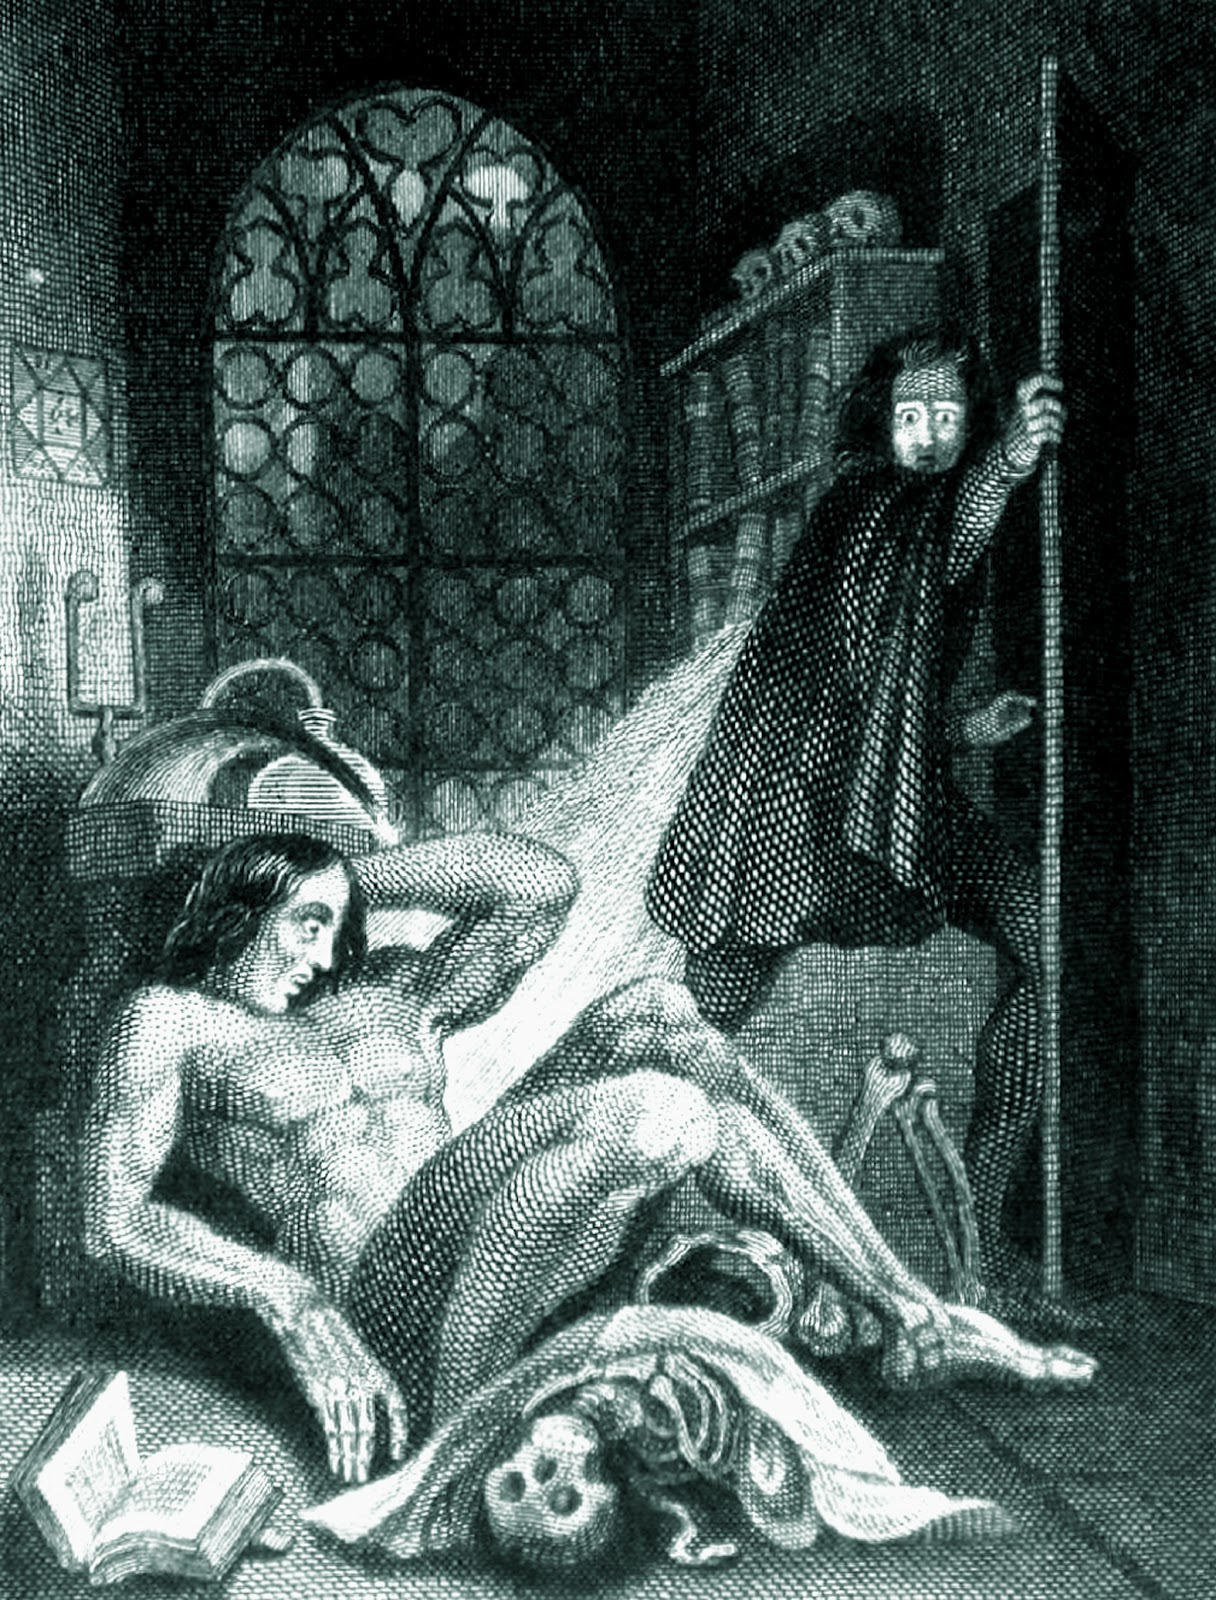 parental relationships in frankenstein Frankenstein by mary shelley deals with the varieties of themes, giving the novel a possibility of diverse interpretations the major themes found in this novel are, theme of birth and creation, theme of fear of sexuality, theme of parental responsibility and nurture, alienation, unjust society, the idea of the 'overreacher' which are described below.